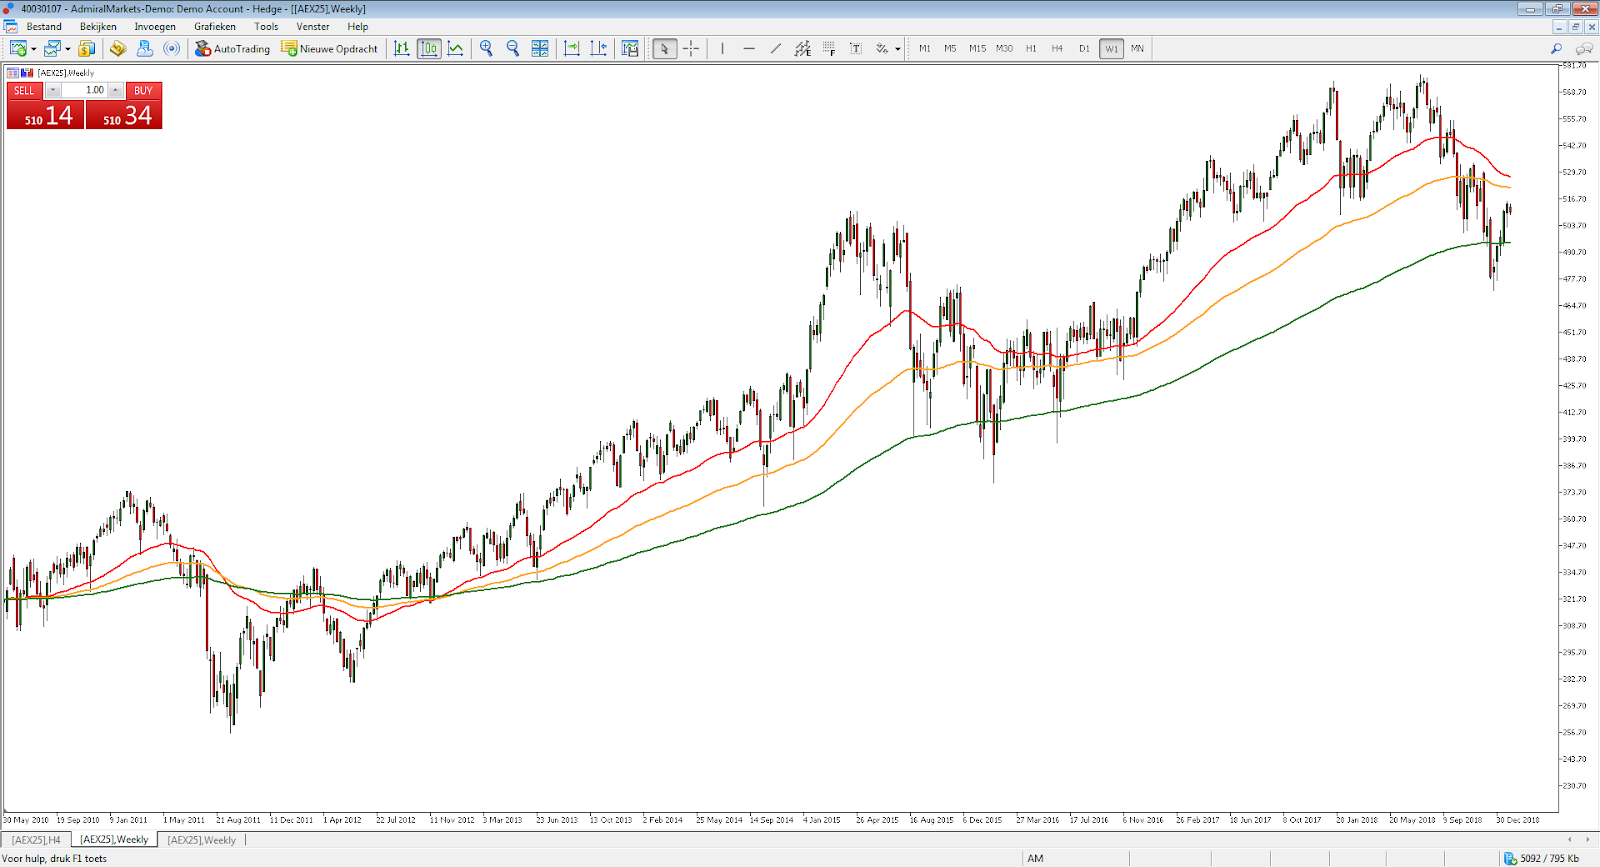 aex trading software - aex handel - trading aex - aex trading - beleggen in aex - aex belegger - beleggen aex index - aex index beleggen